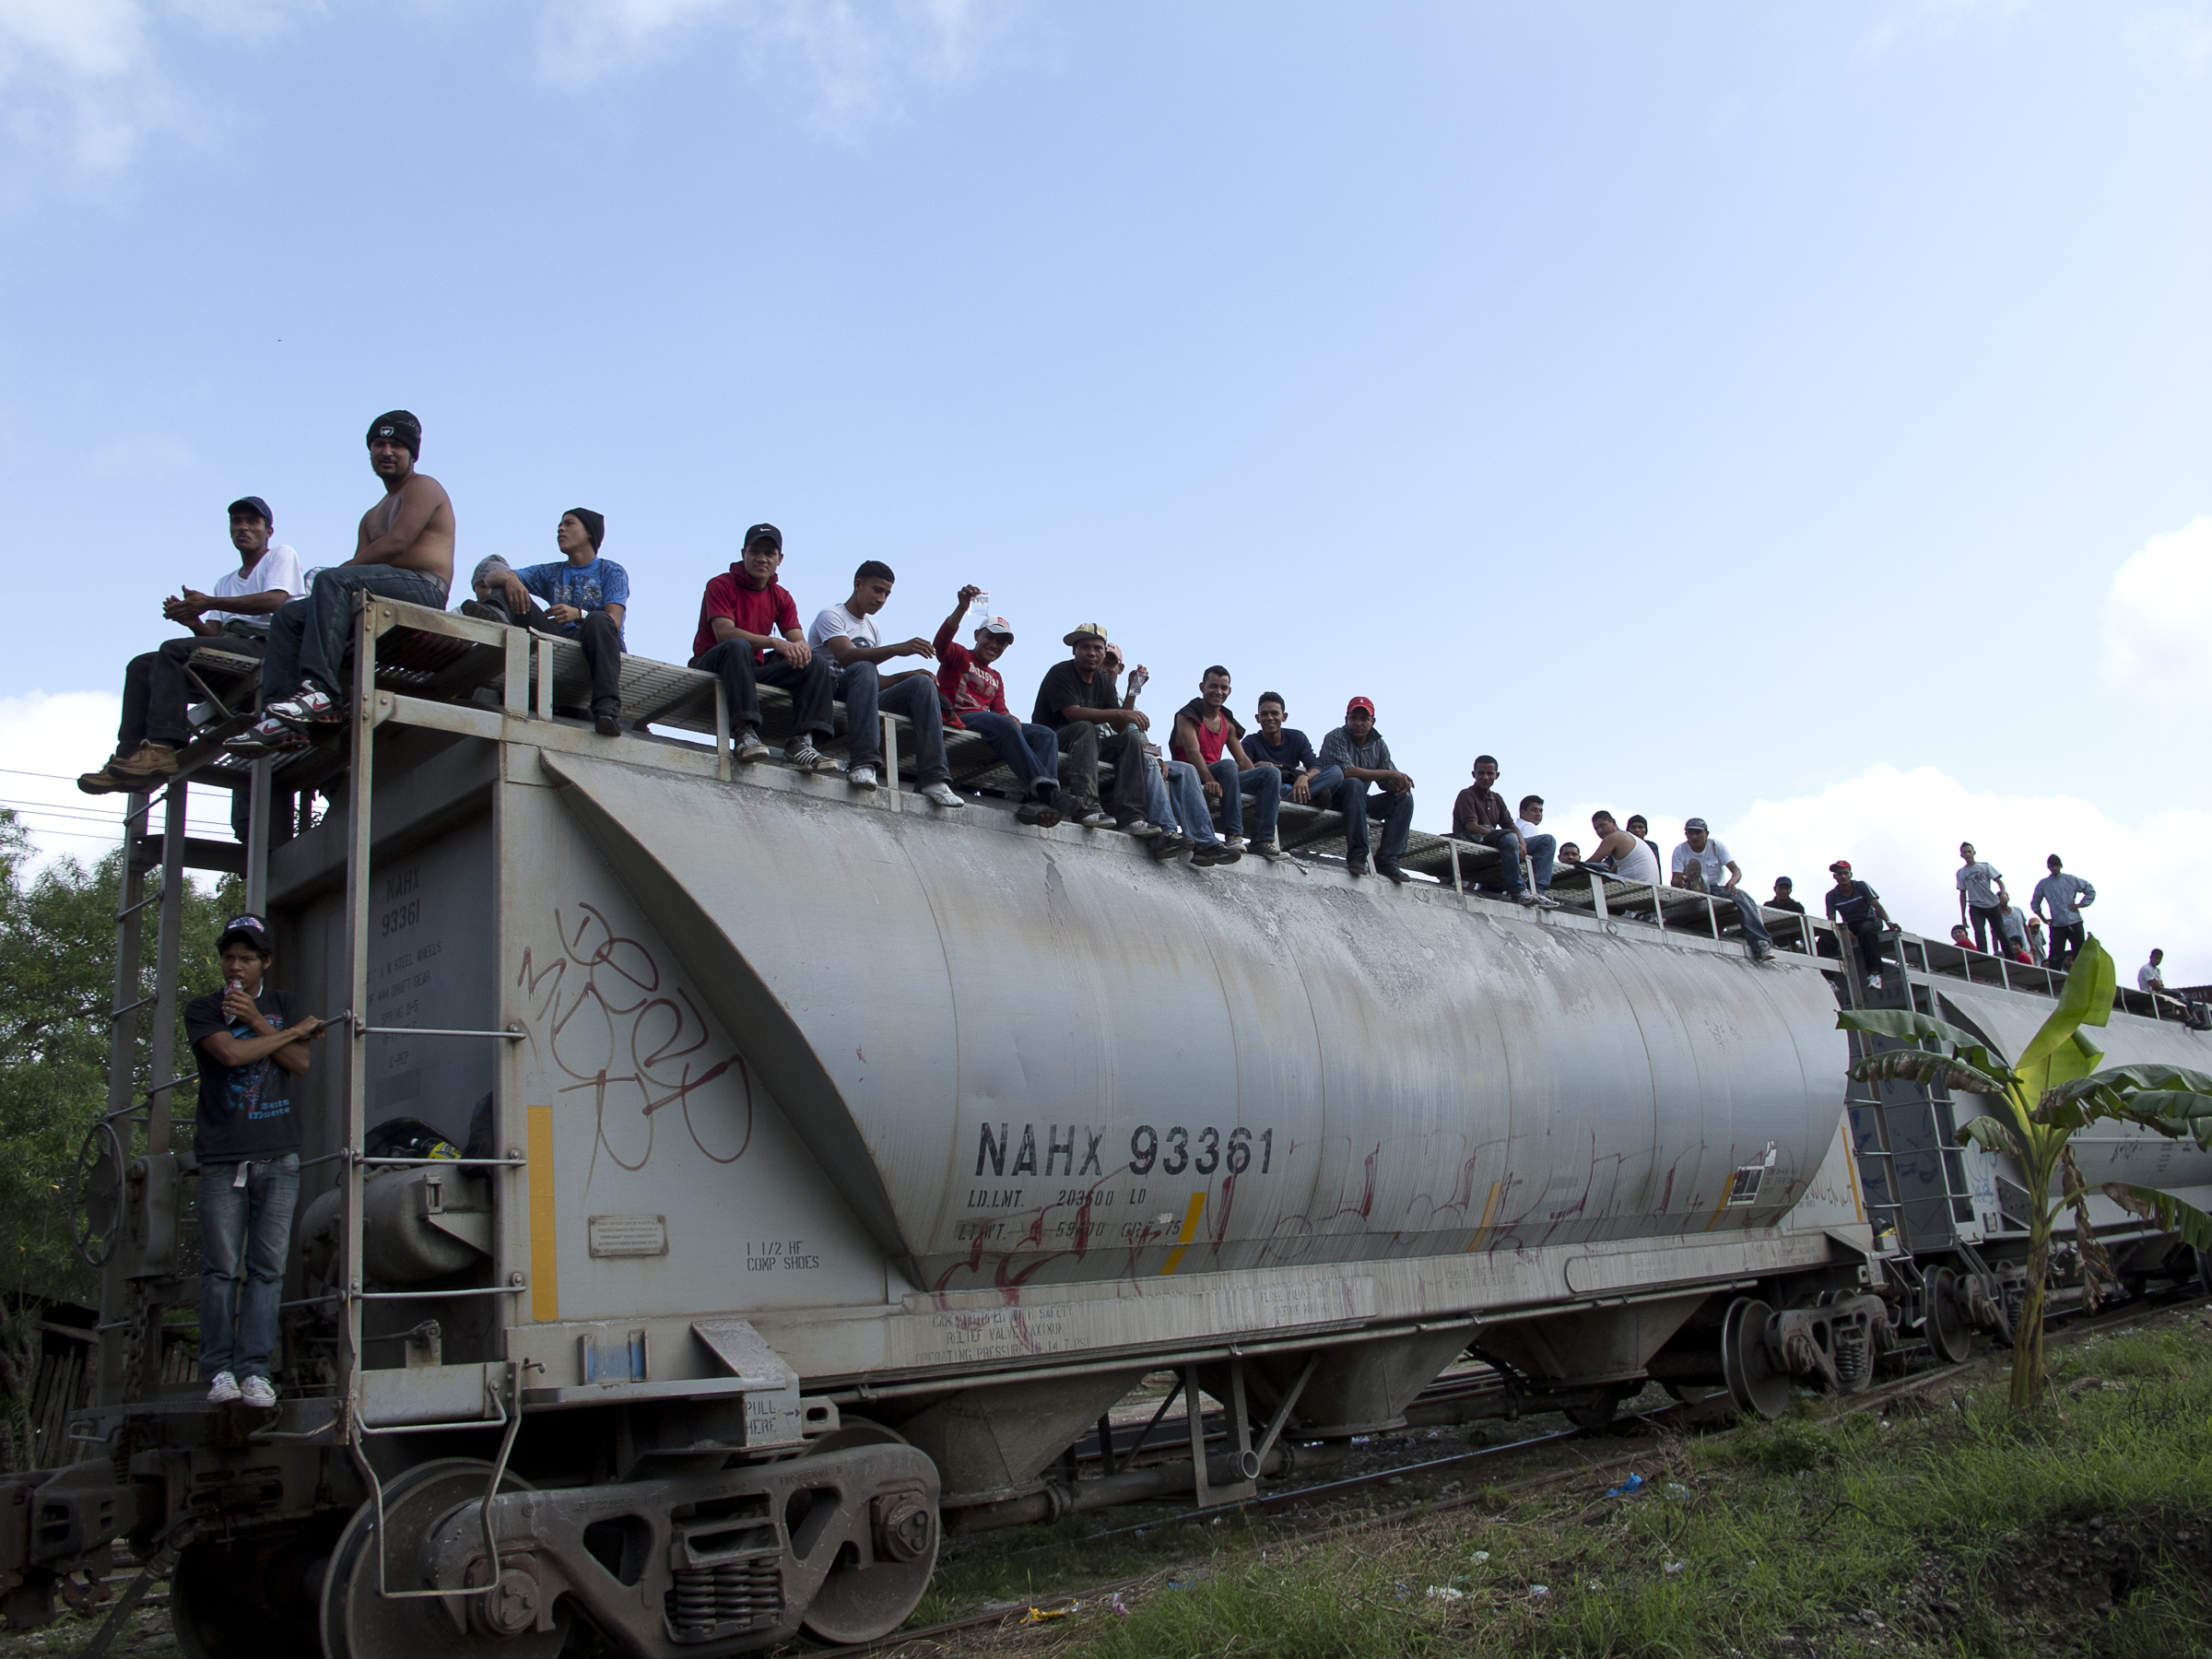 Tenosique, Mexico Central America migrants wait for the departure of the train. Tenosique, some 30 kilometers from the Guatemalan border, is one of the two main gateways for migrants from Central America en route to the United States. Most of the migrants are between 16 and 21 years old.